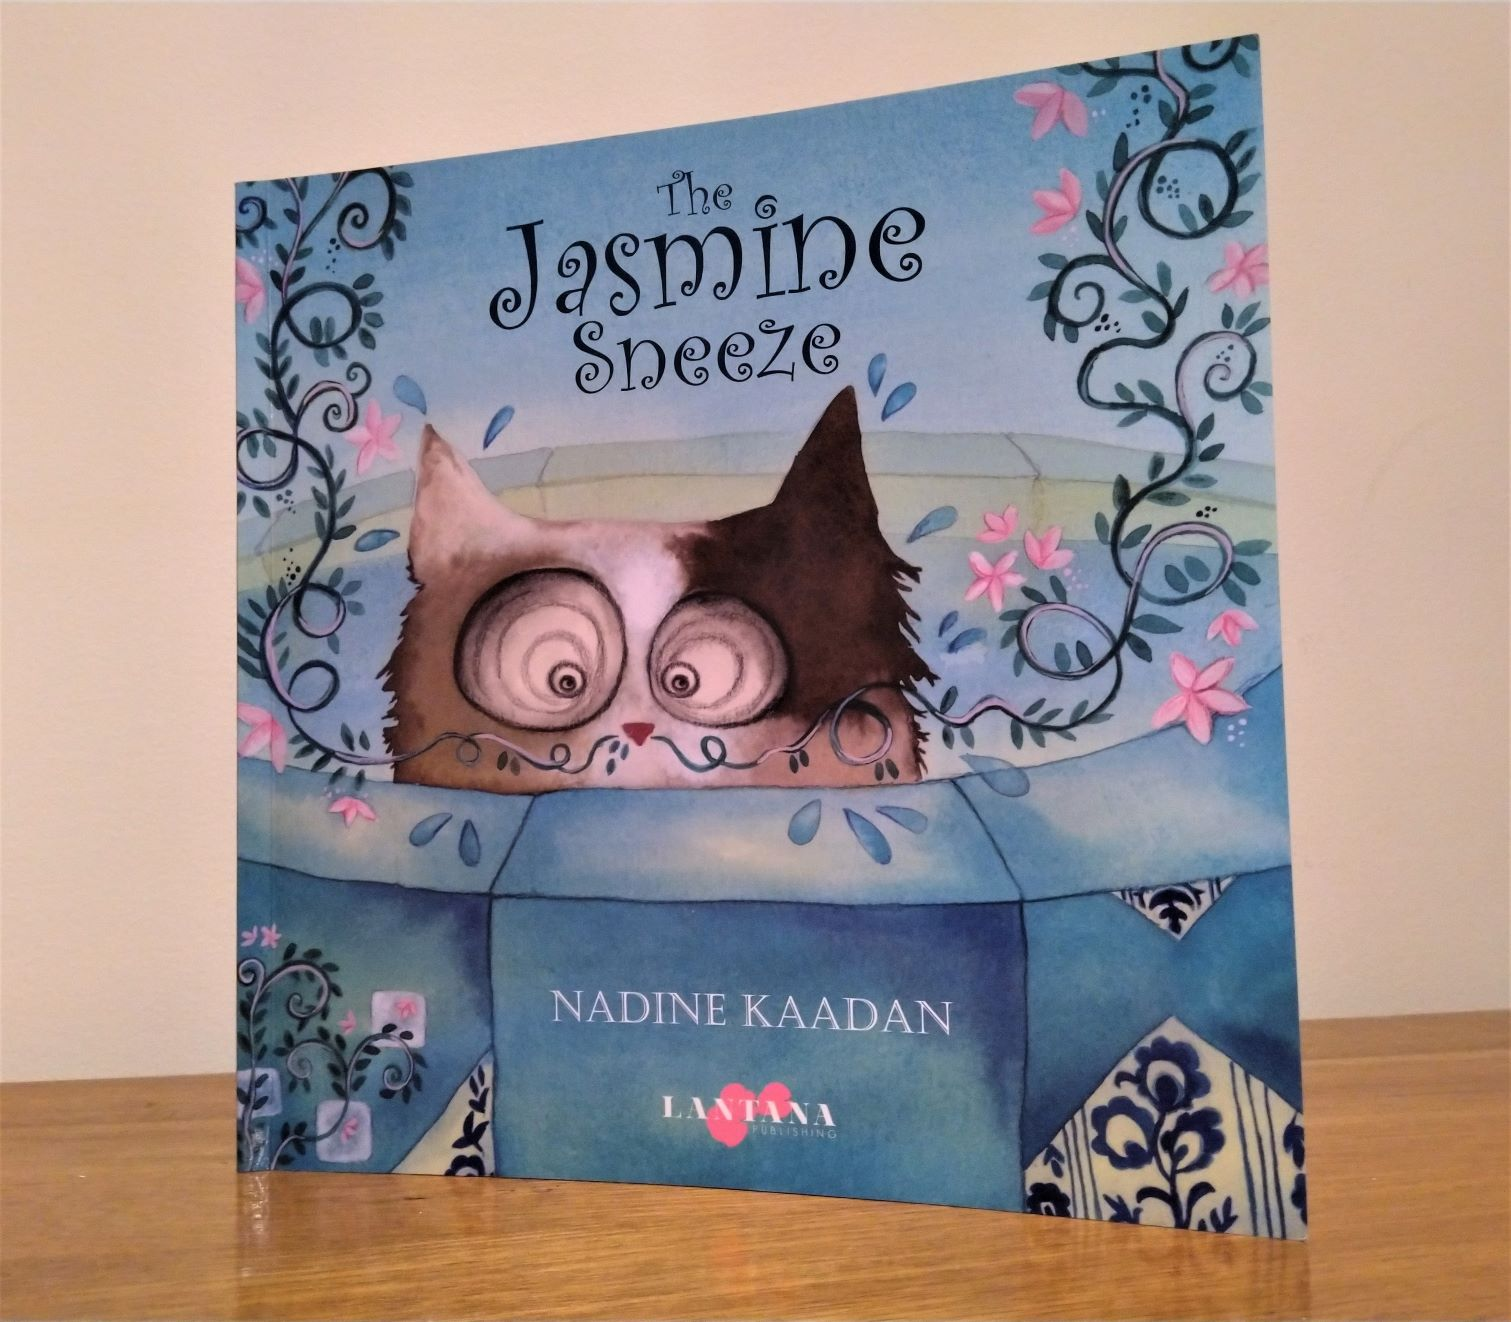 The Jasmine Sneeze by Nadine Kadaan.